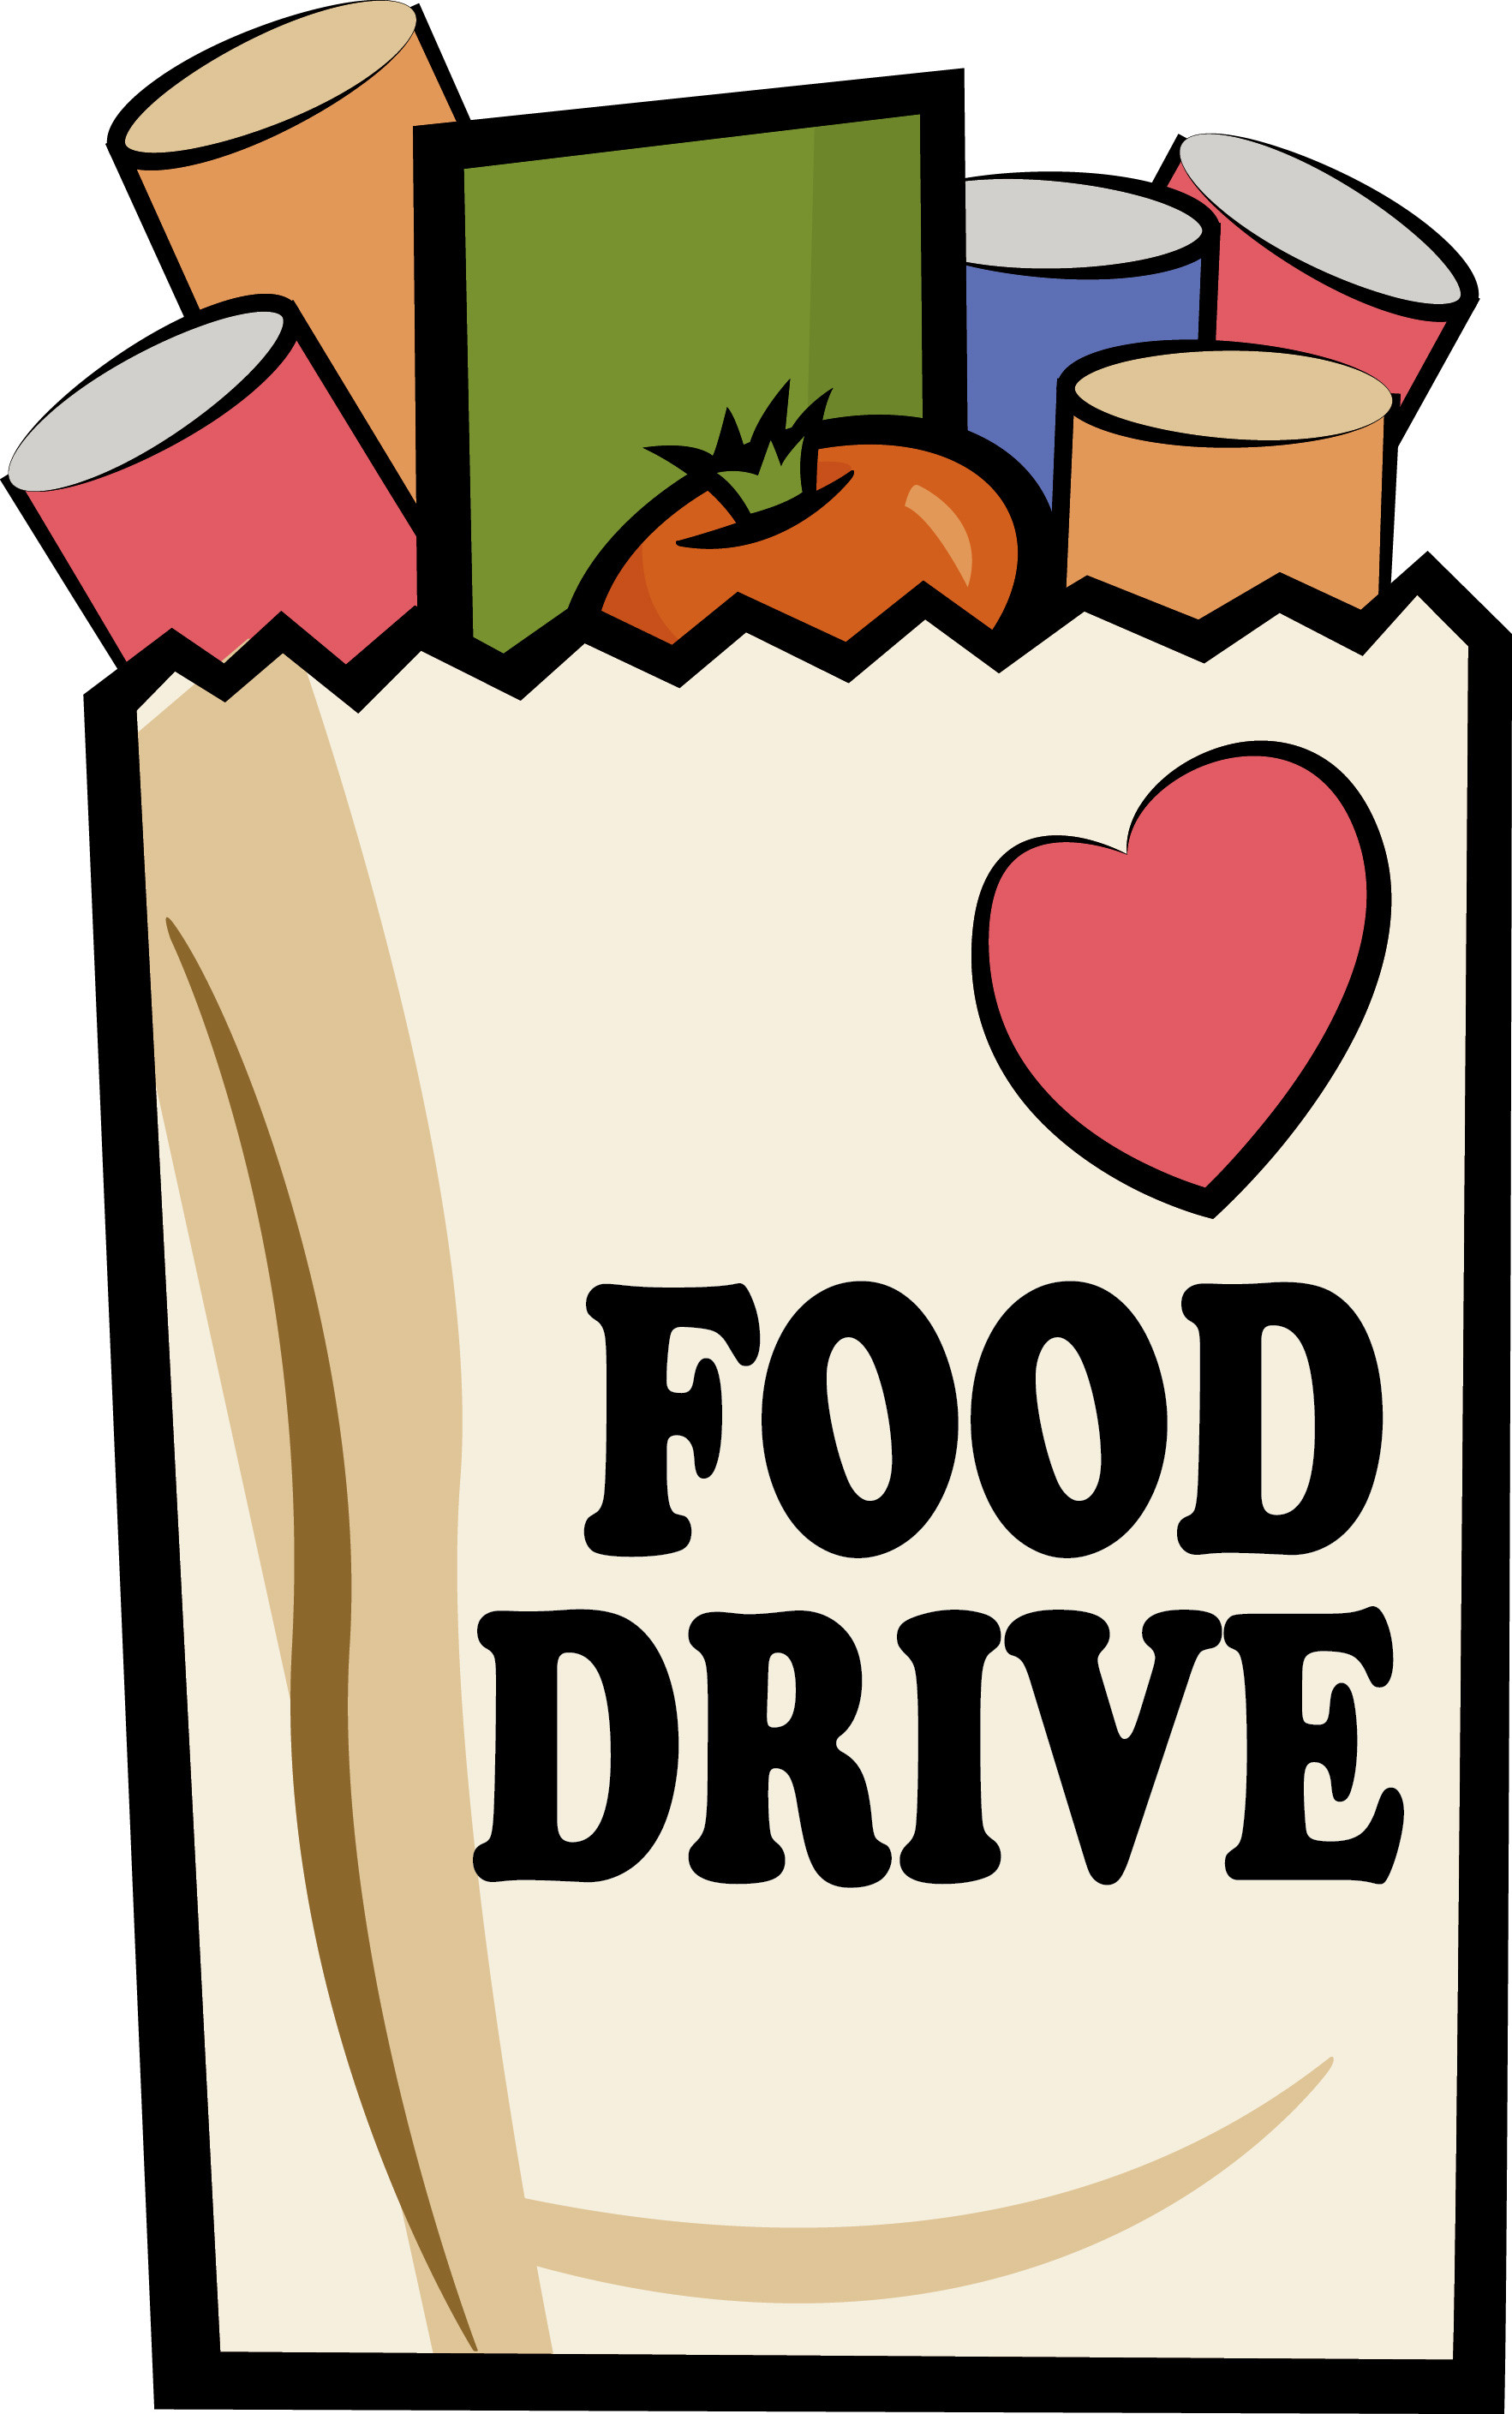 Canned clipart food donation. Cilpart startling donate